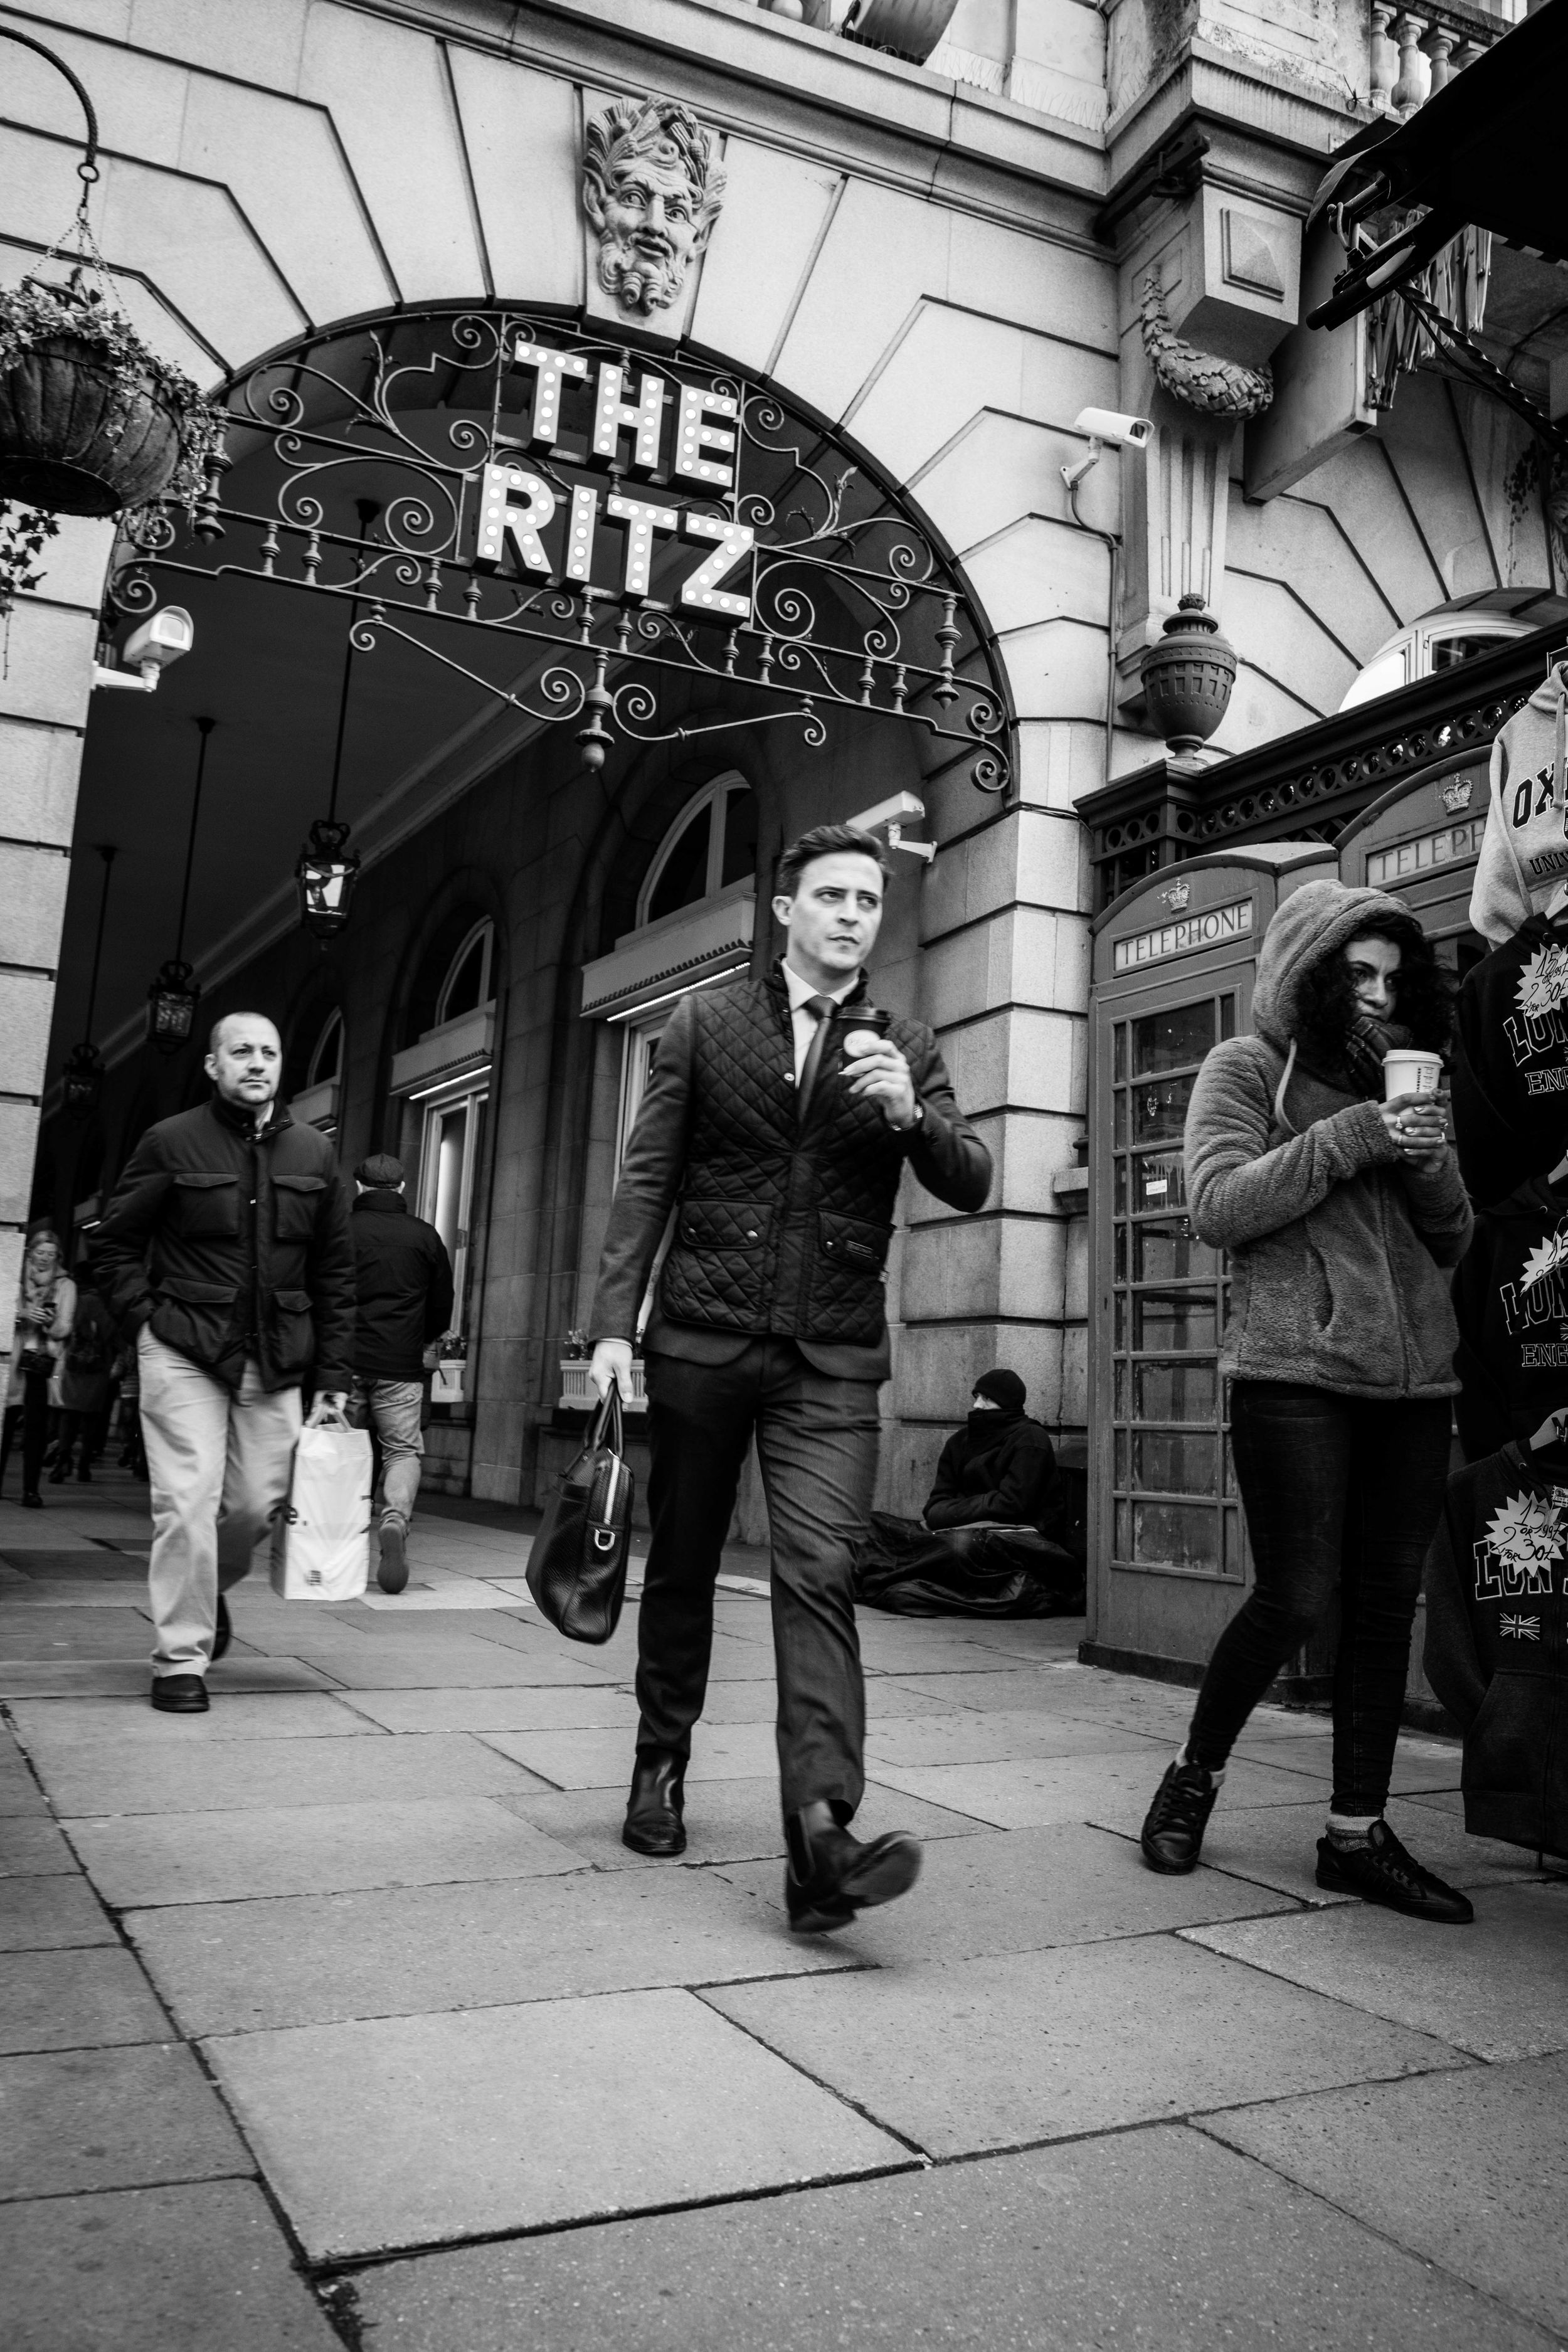 Black and white street photograph of commuters passing homeless man outside the Ritz Hotel, London.